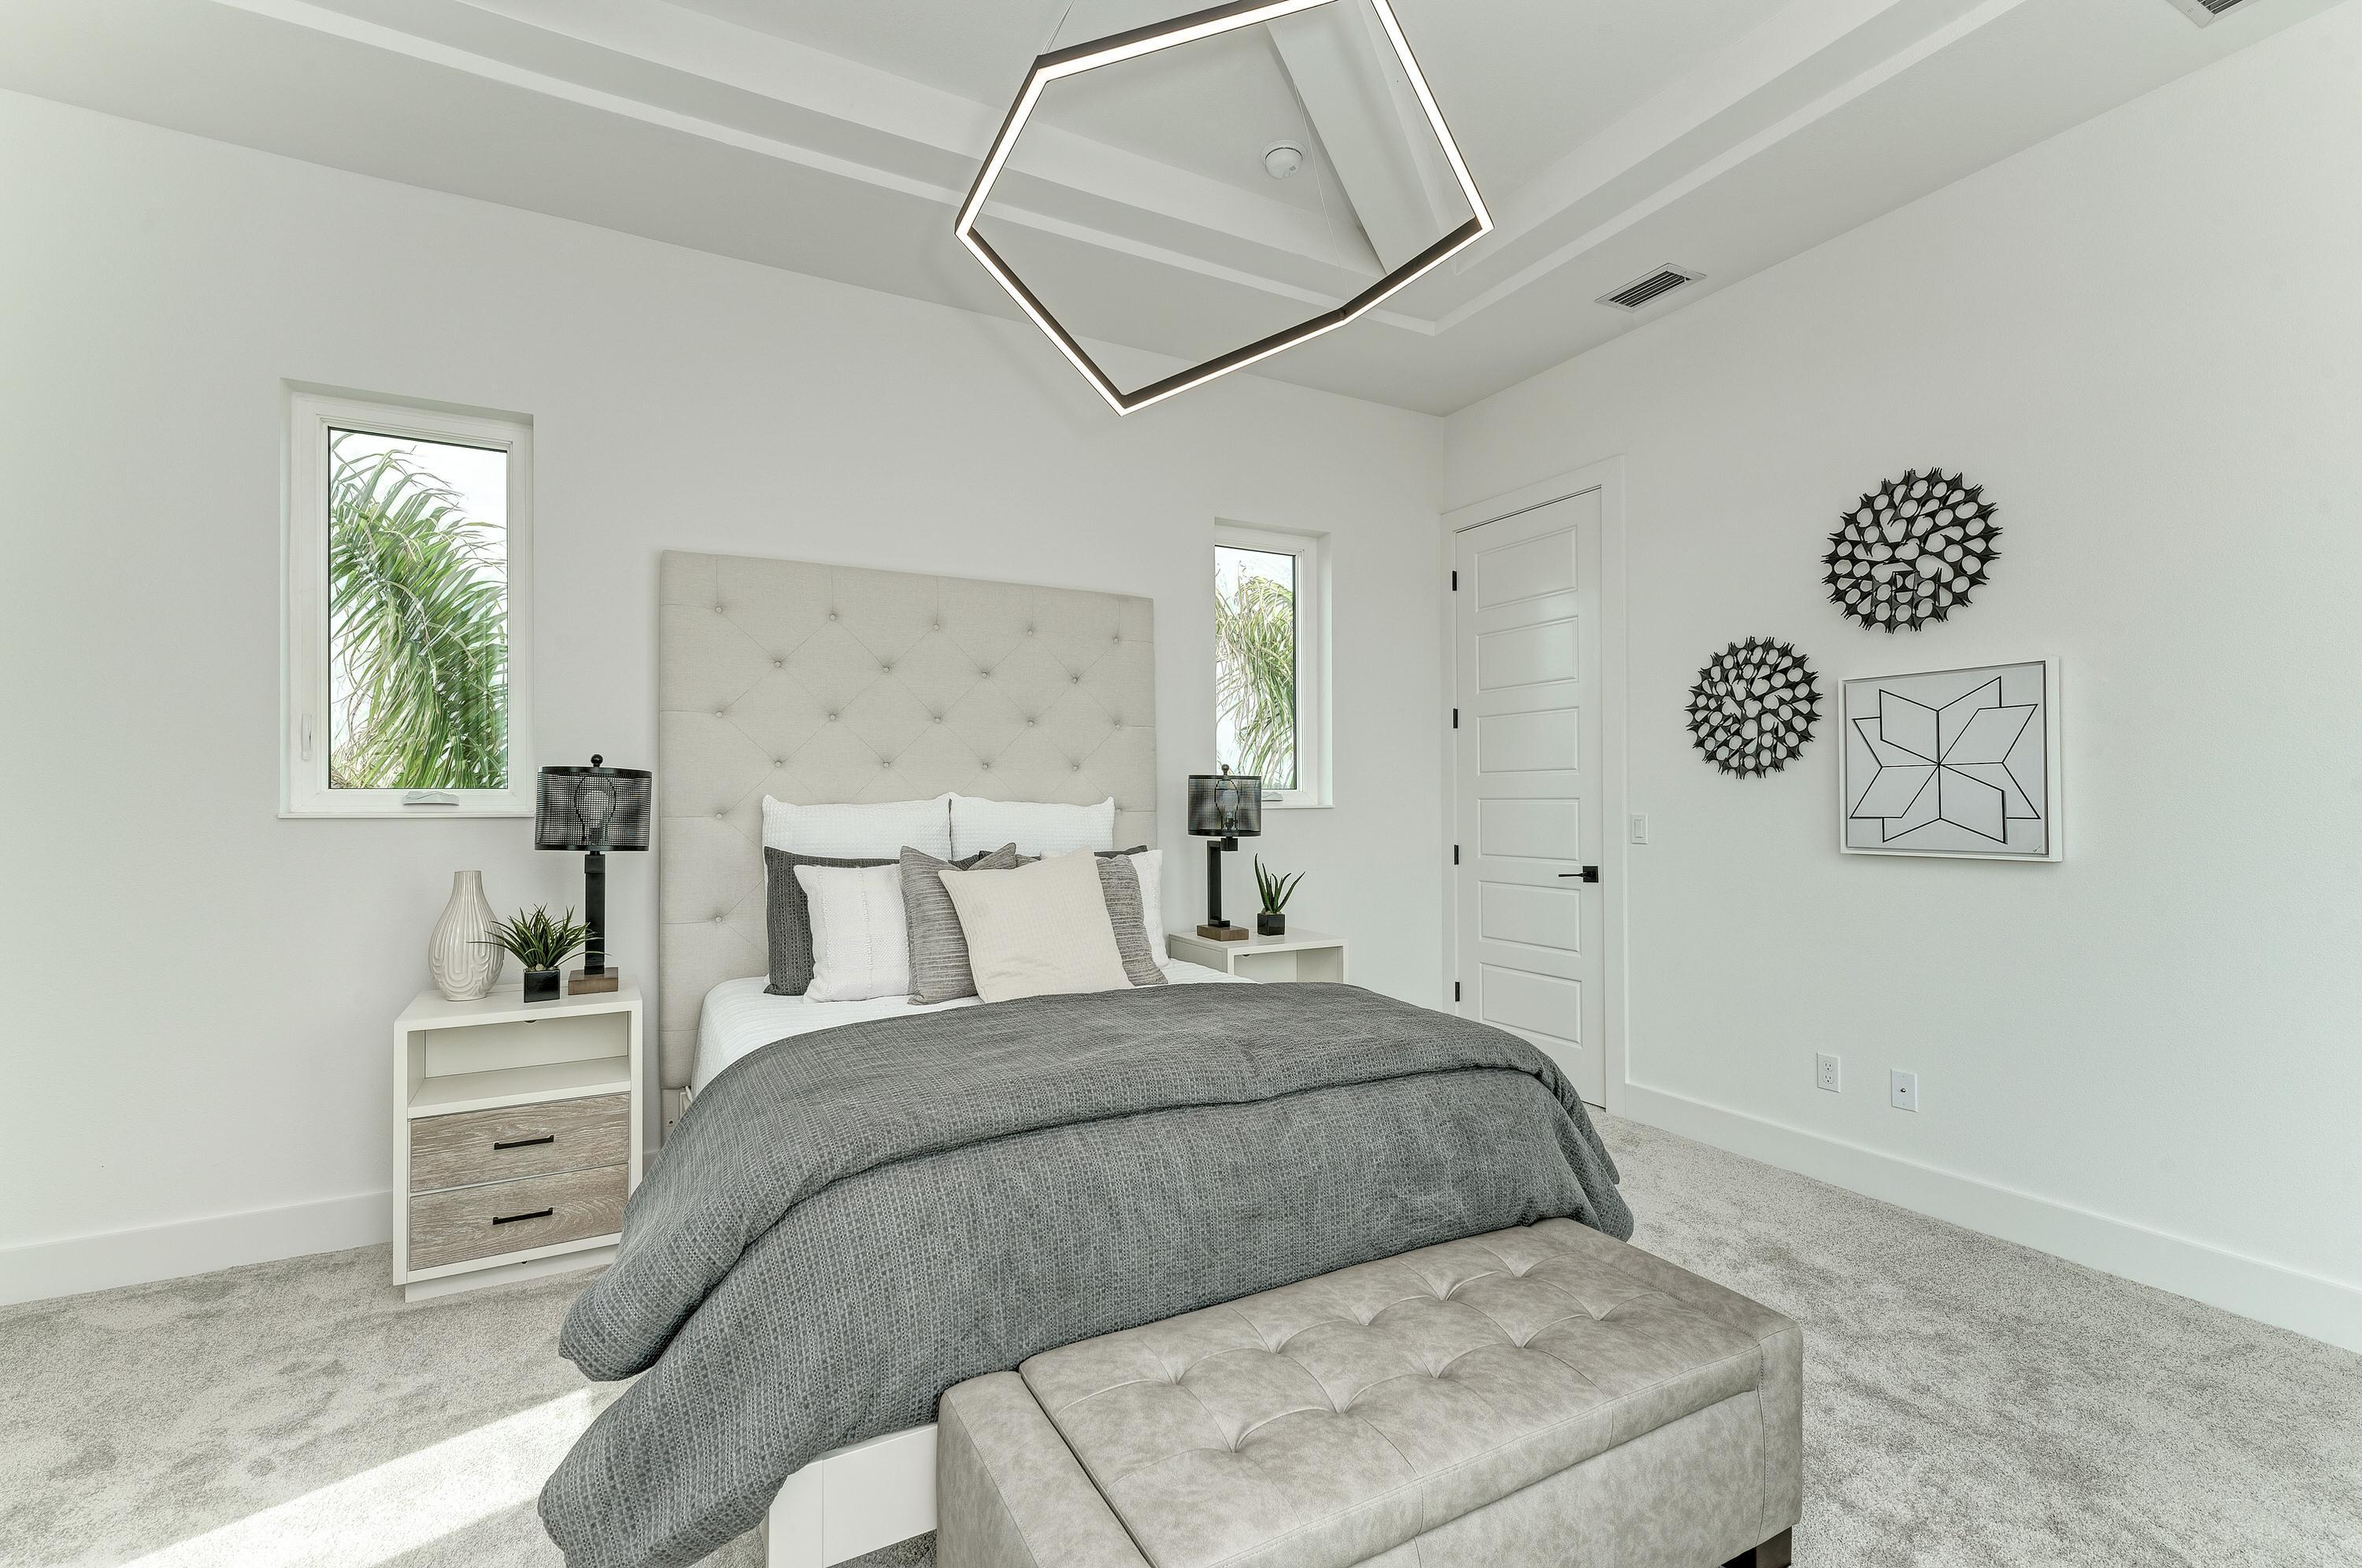 Bedroom featured in the Salt Meadow By Medallion Home in Sarasota-Bradenton, FL